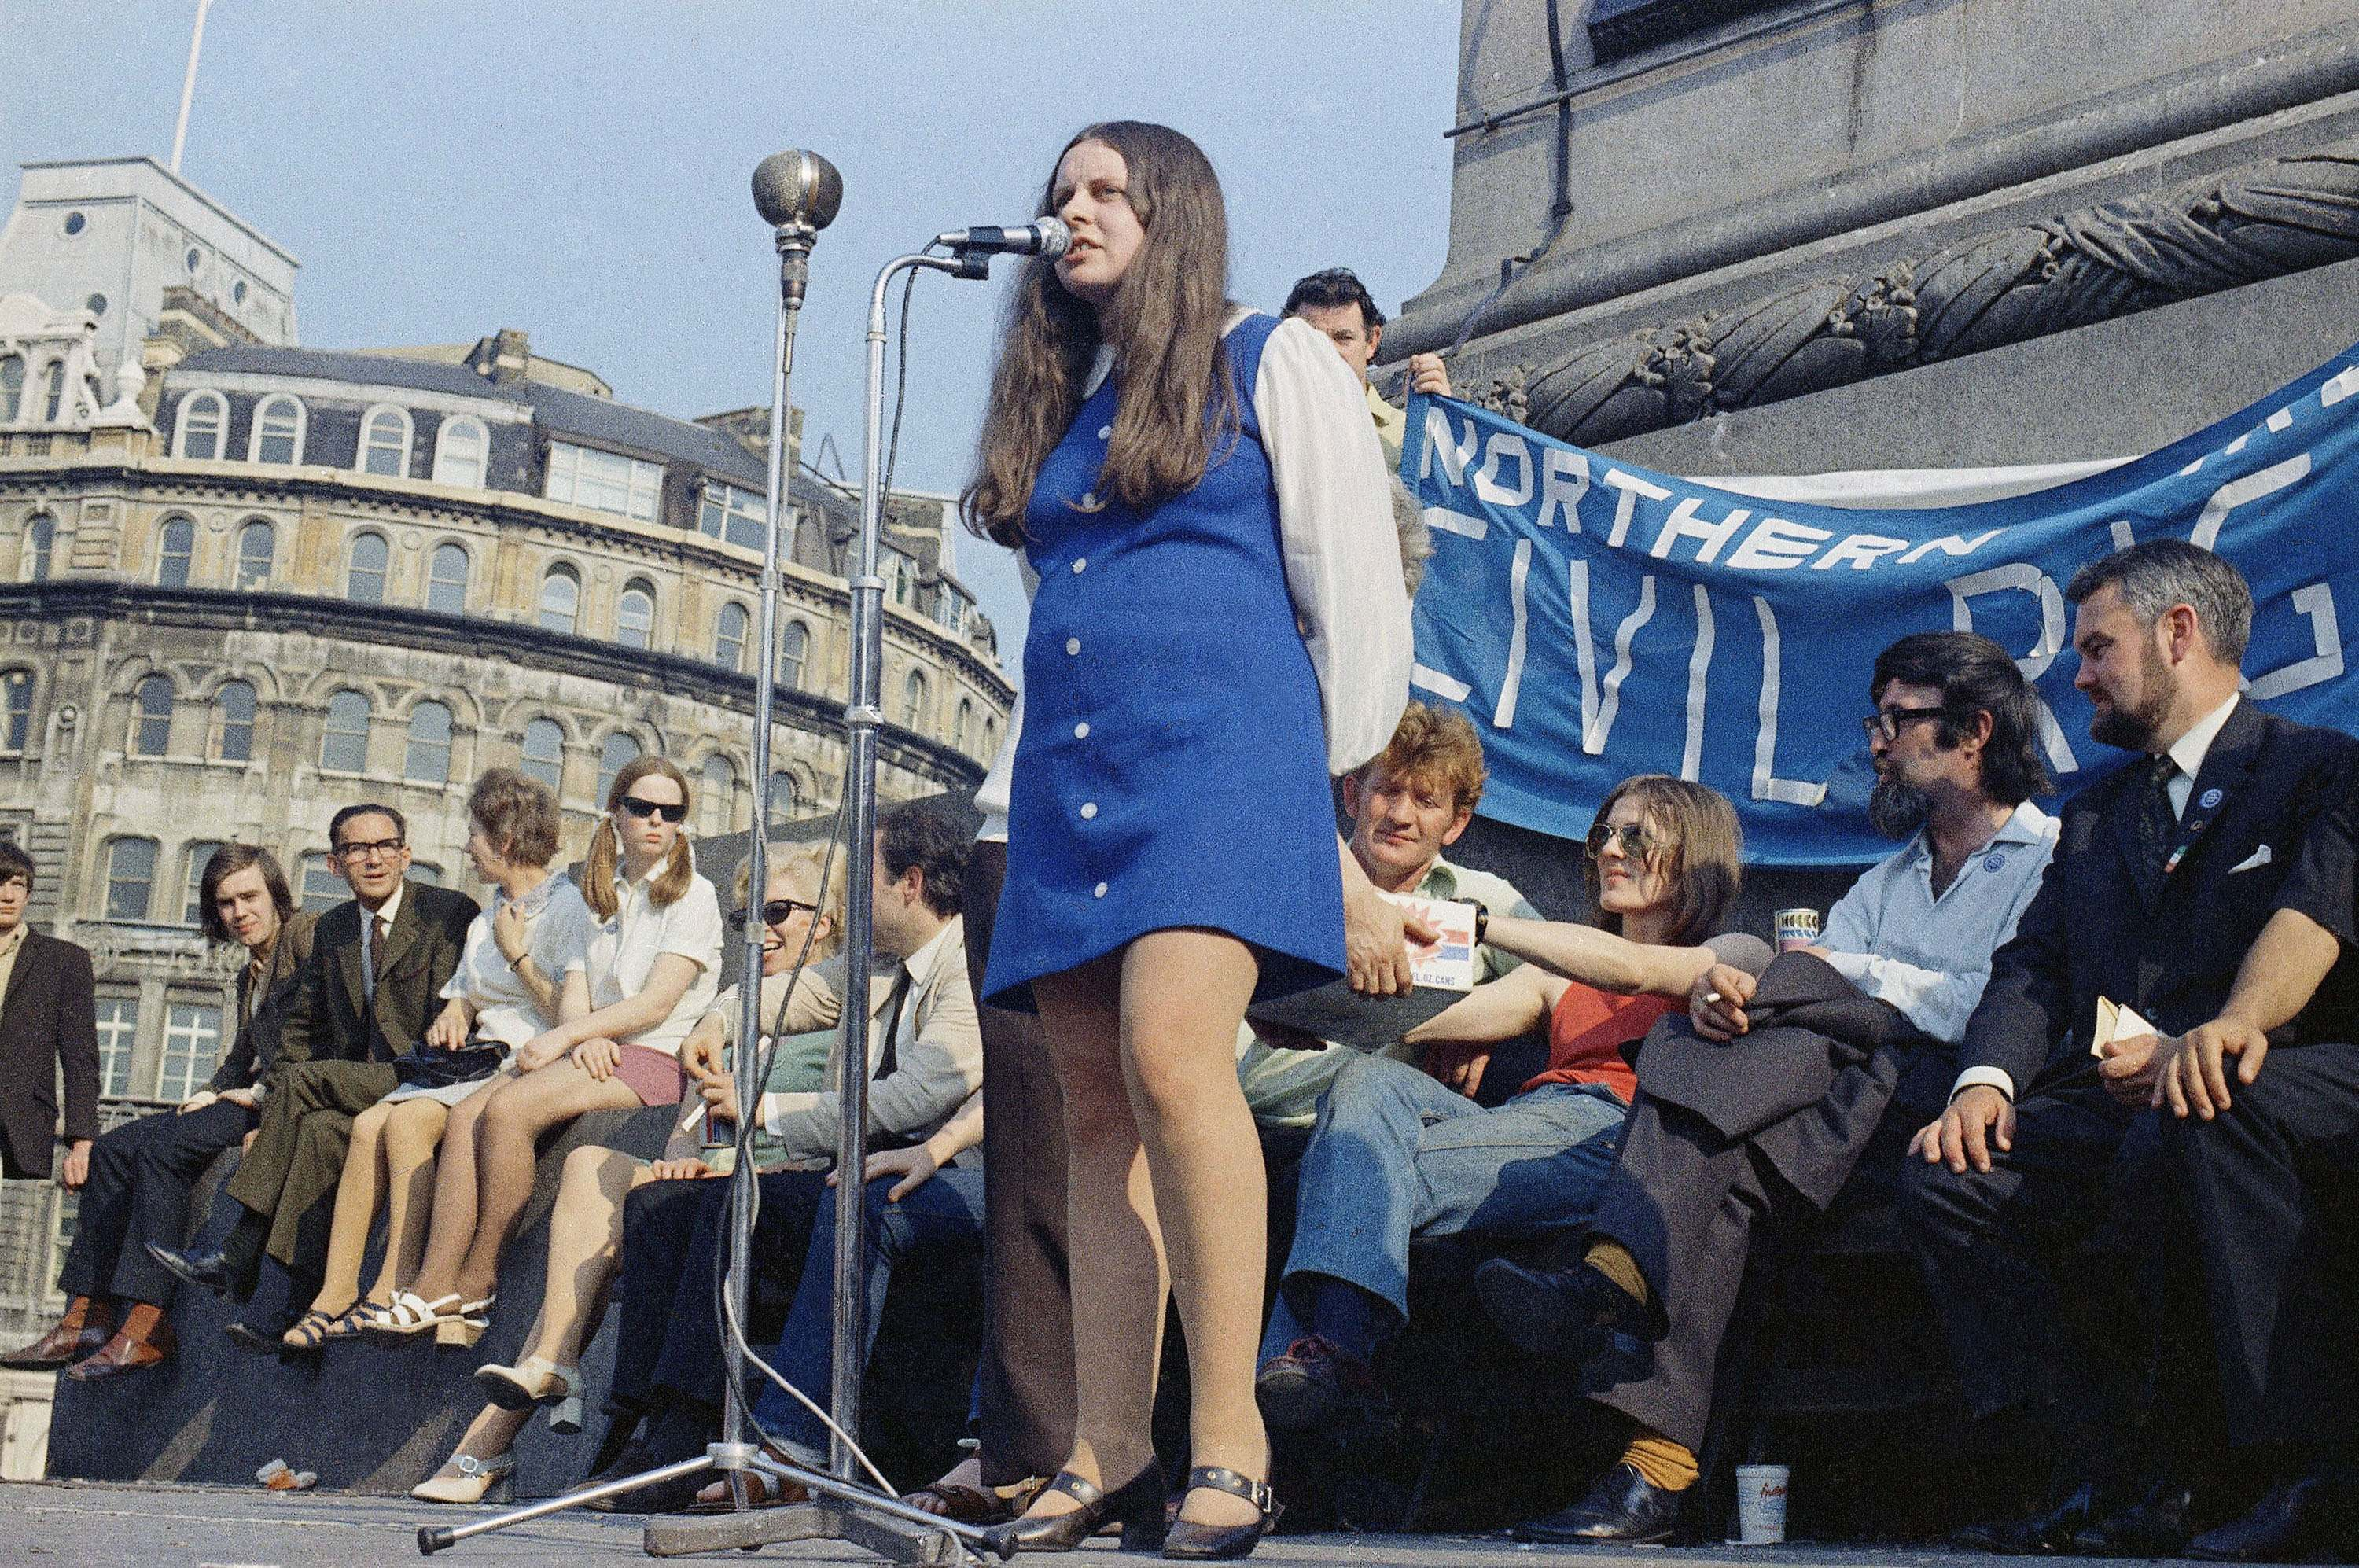 Bernadette Devlin, MP for Mid-Ulster, speaking at a rally in Trafalgar Square, London, on June 1, 1971. (AP Photo)